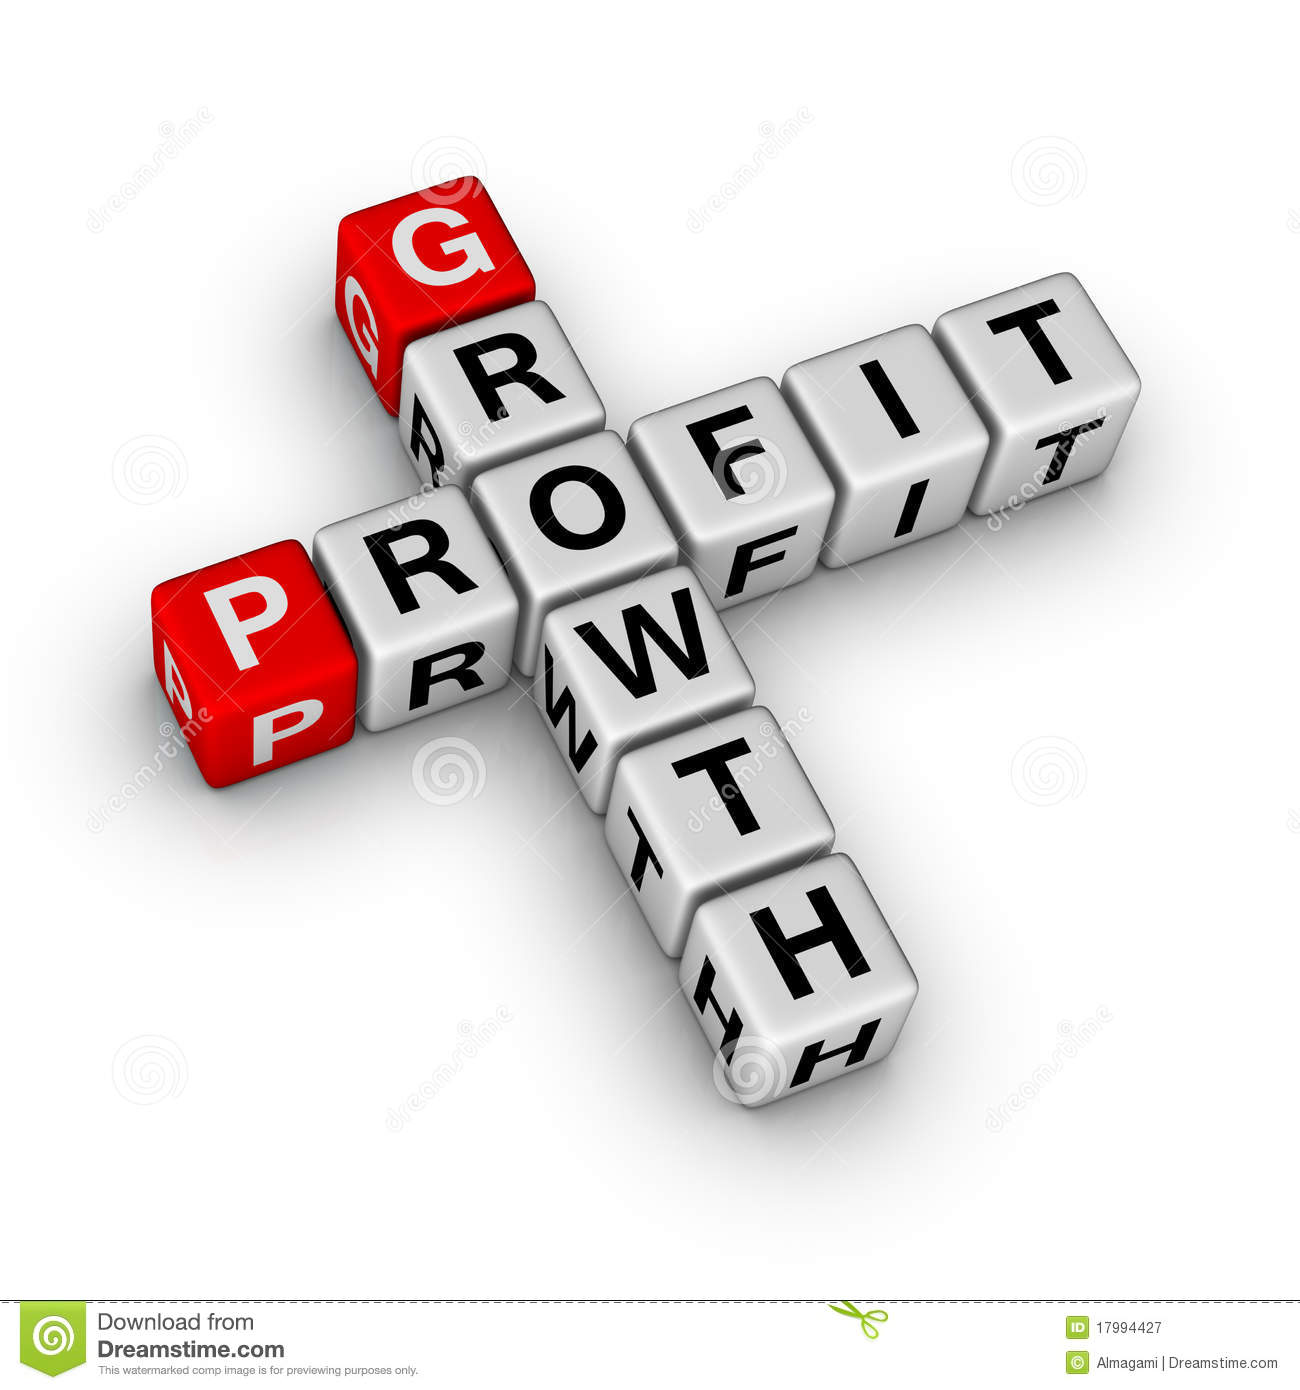 Growth And Profit Royalty Free Stock Photography - Image: 17994427